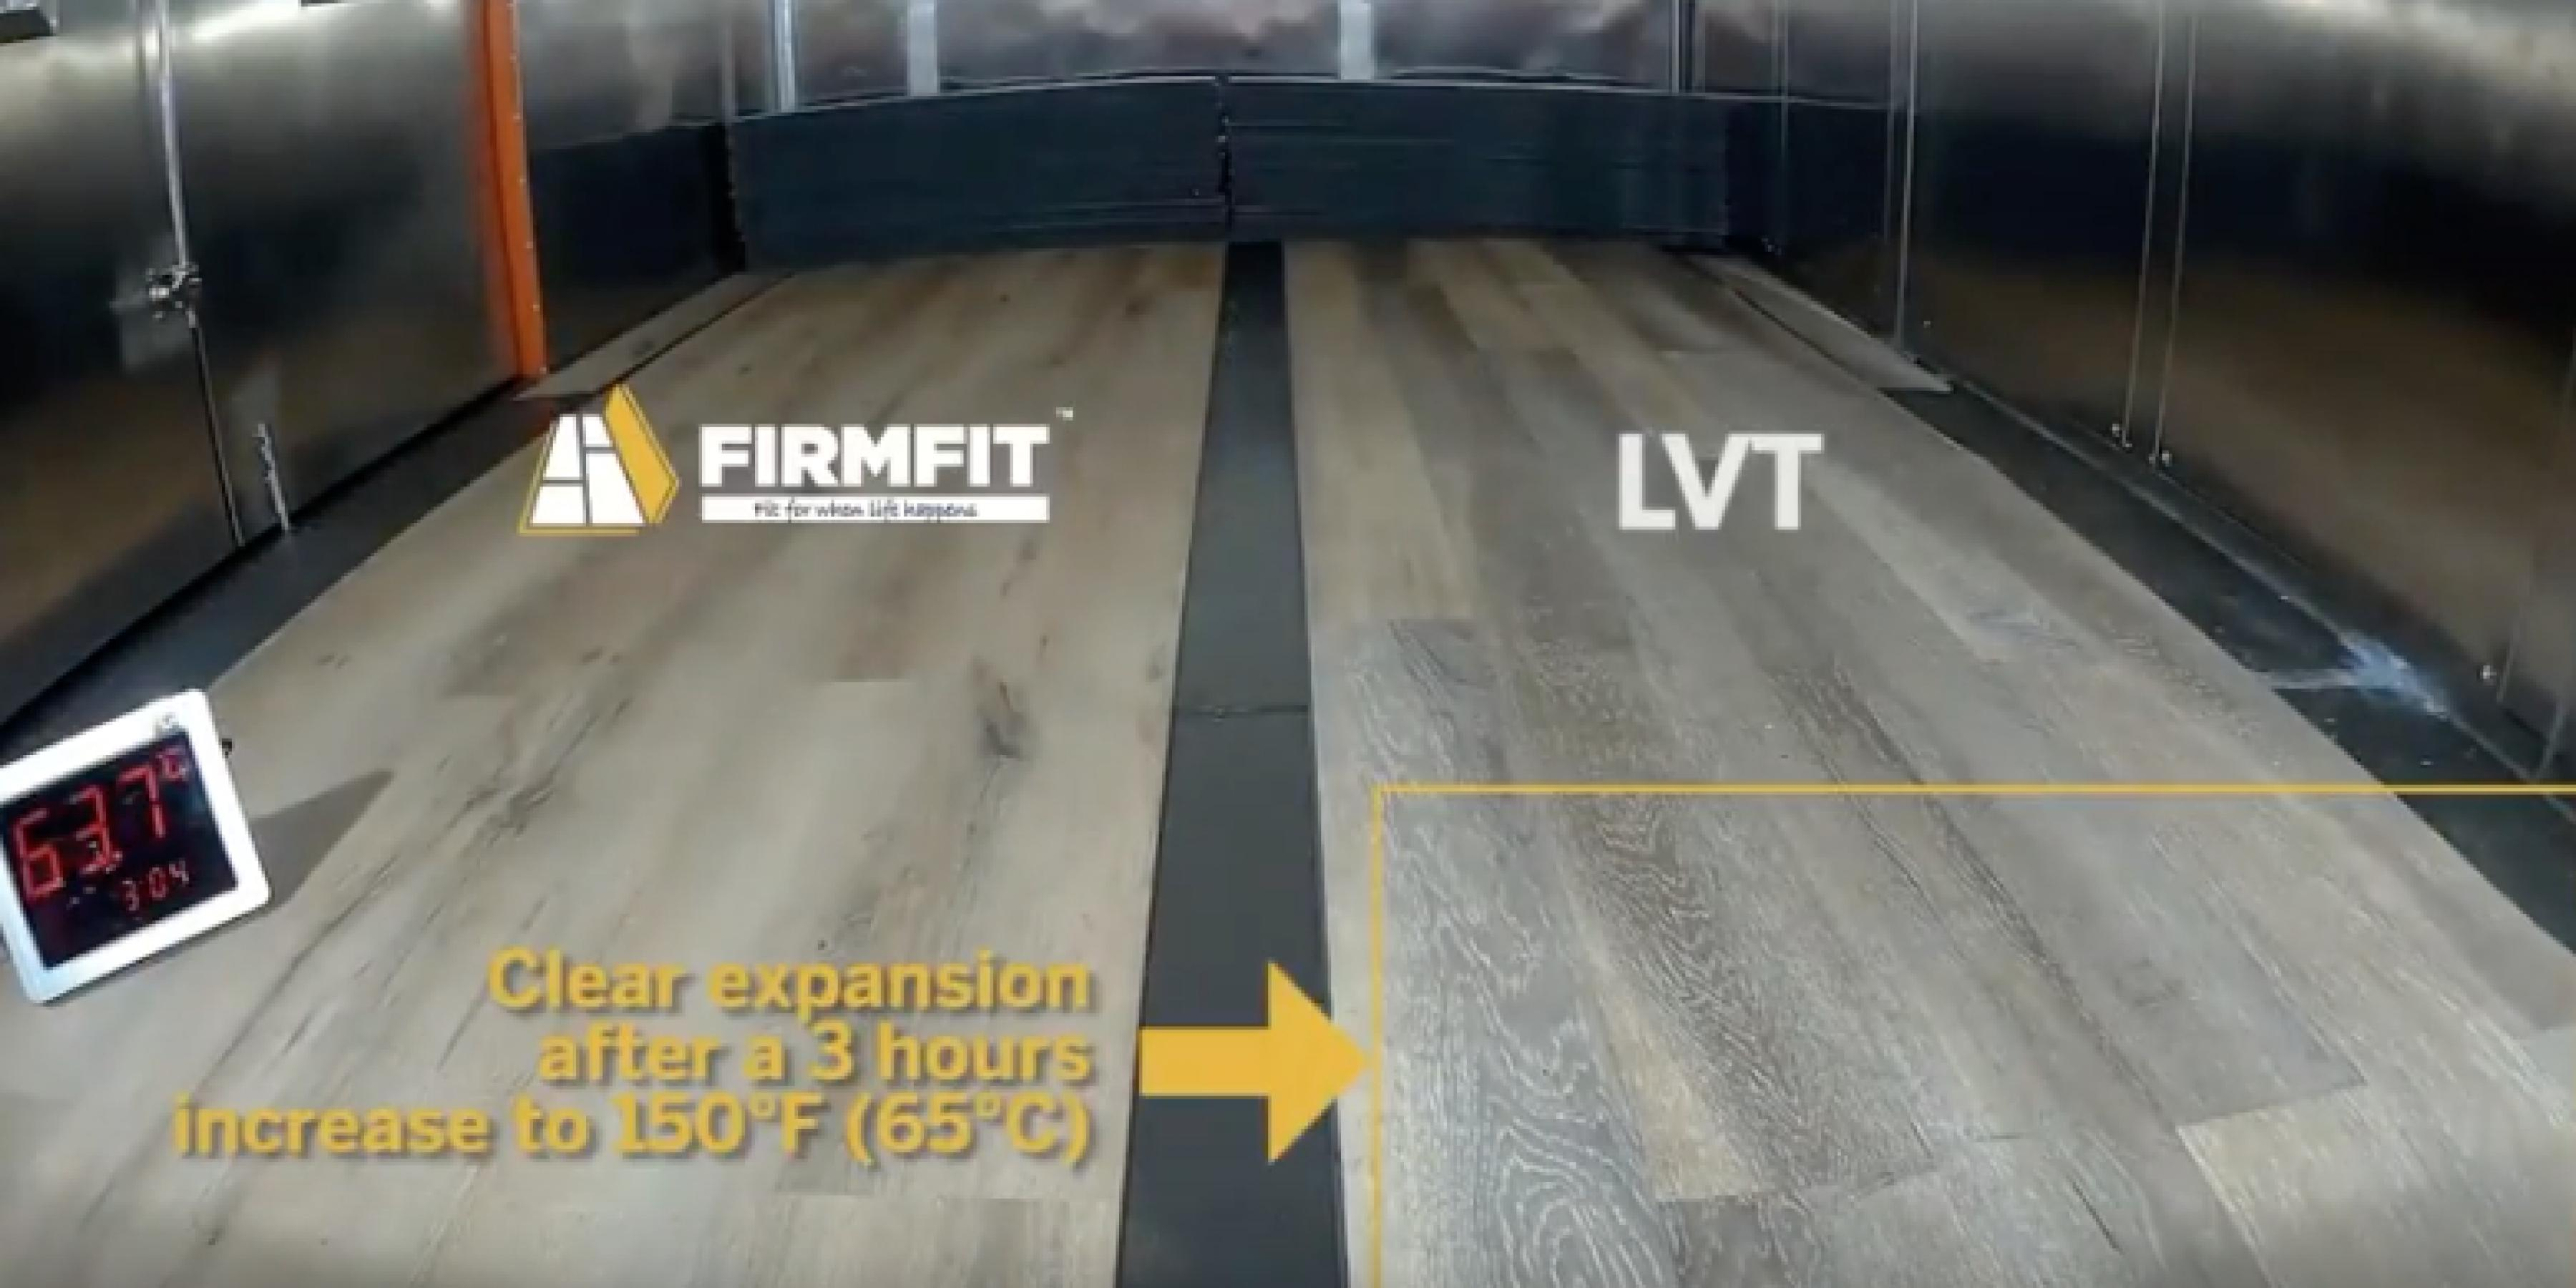 FIRMFIT® by Richmond Reflections - Stability Test